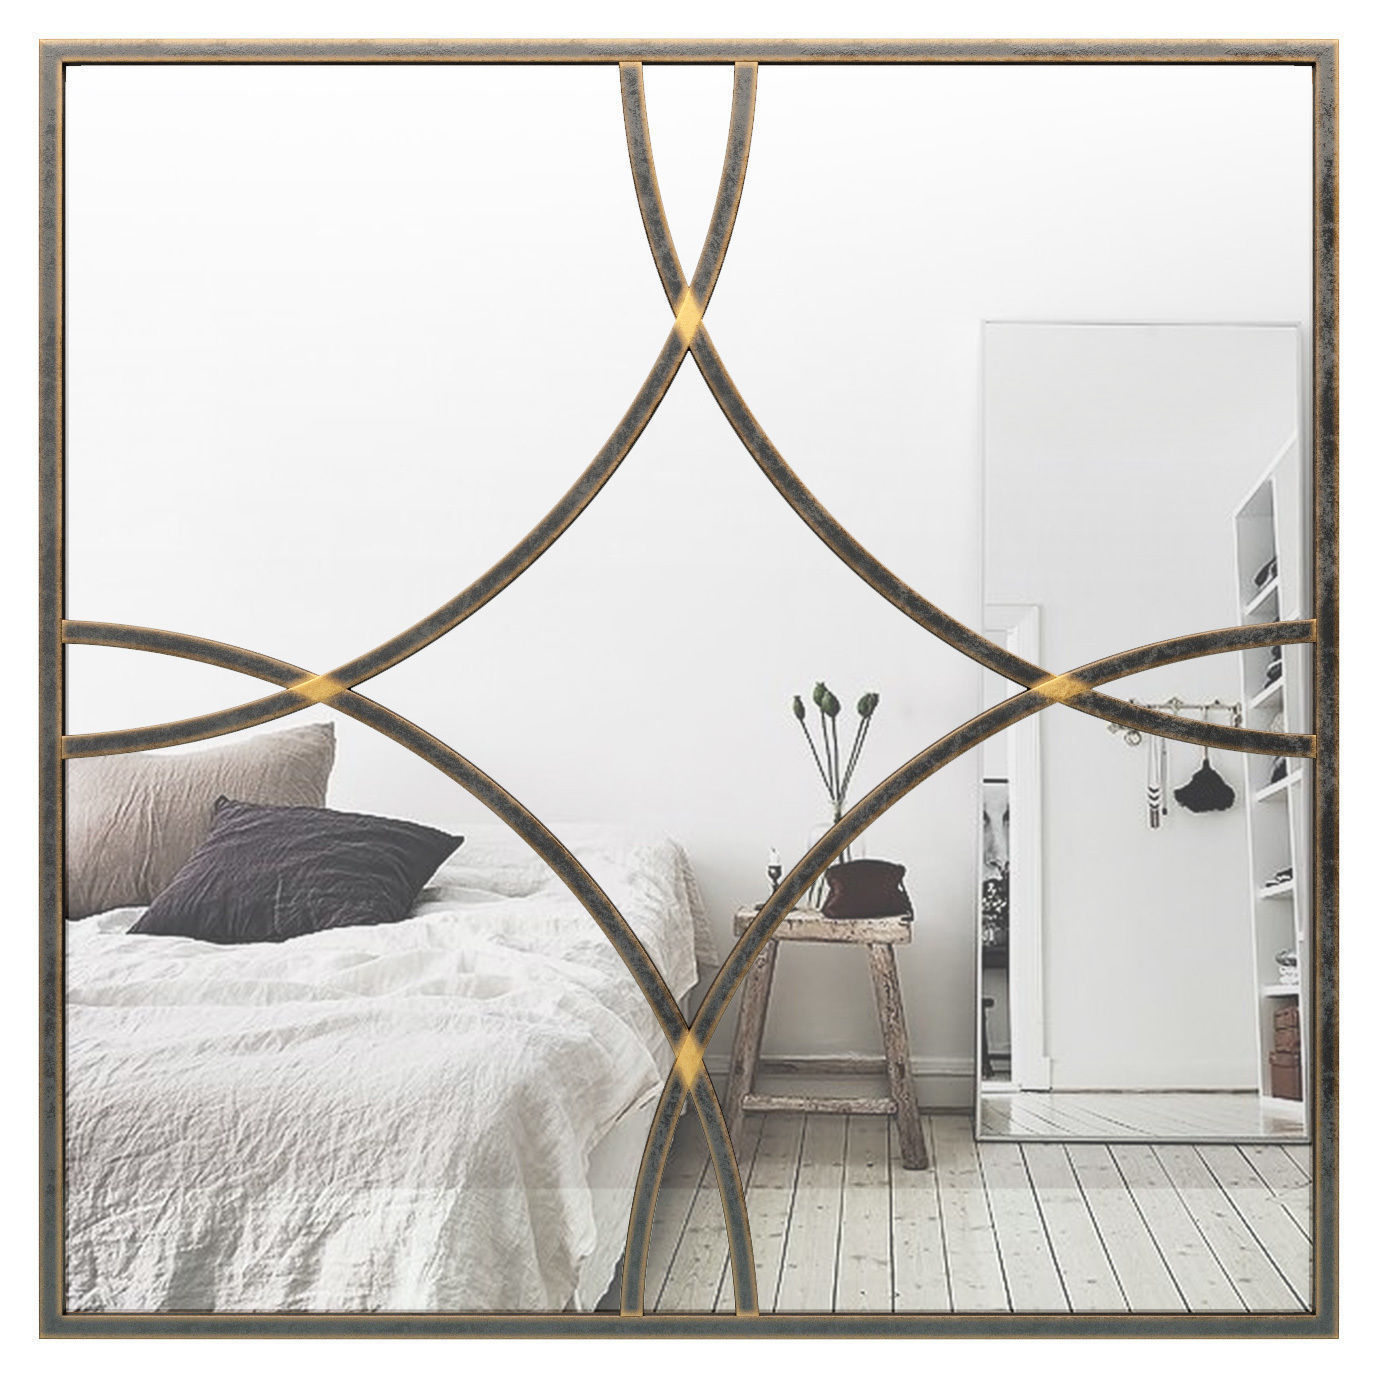 Allaryce Square Medallion Metal Accent Mirror Tcdt1004 | 3D Model Intended For Medallion Accent Mirrors (View 13 of 20)